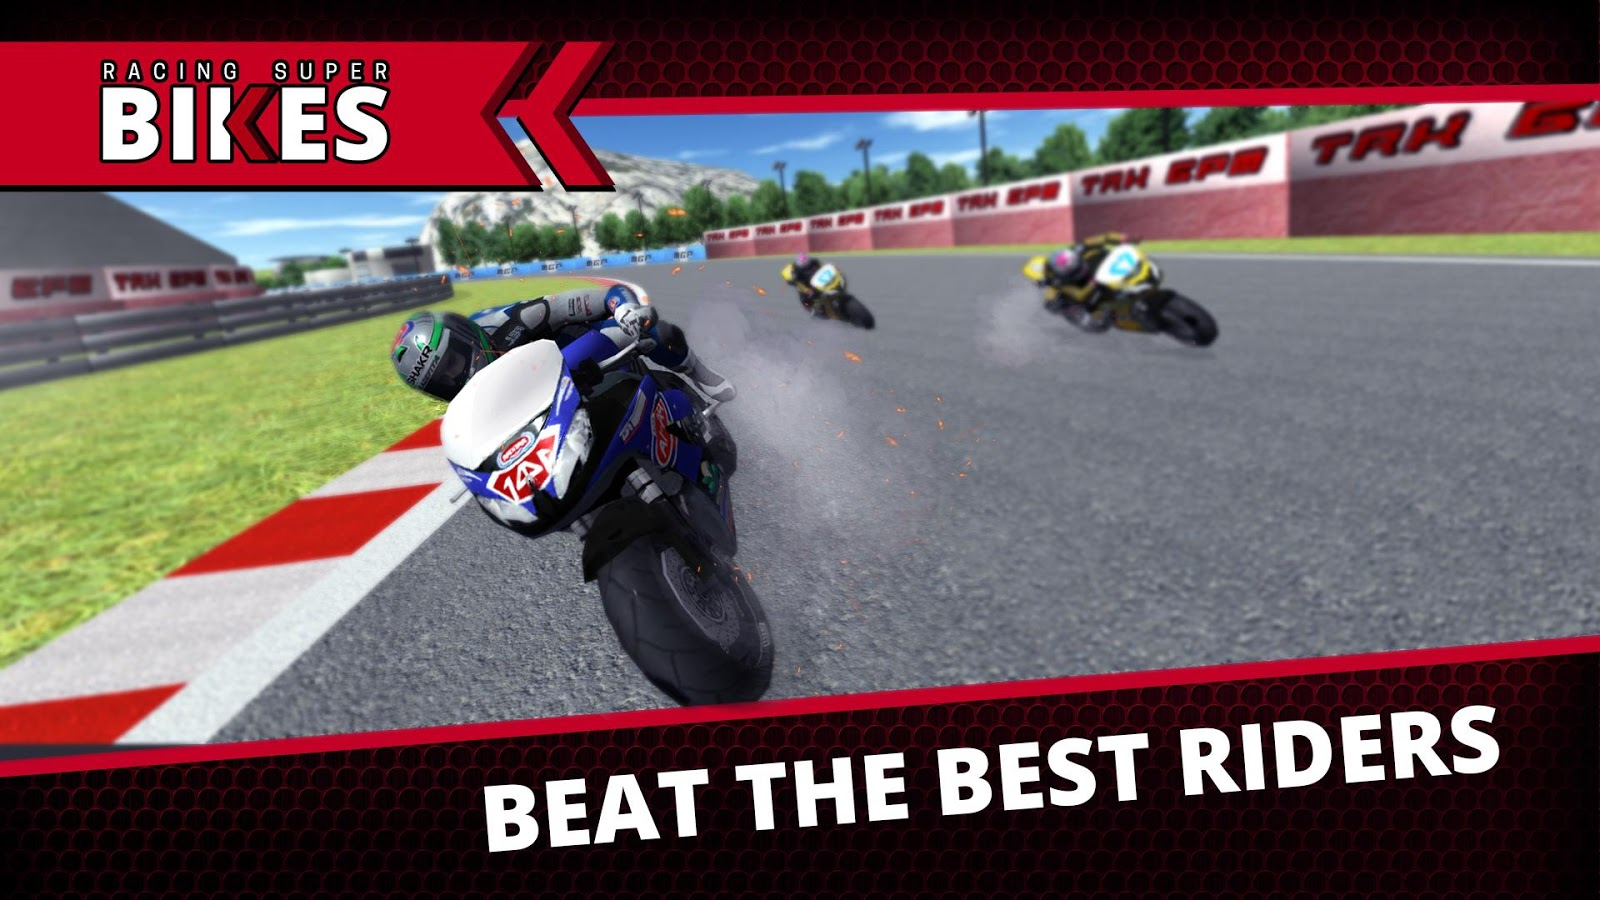 Super Bikes 2018 - Android Apps on Google Play